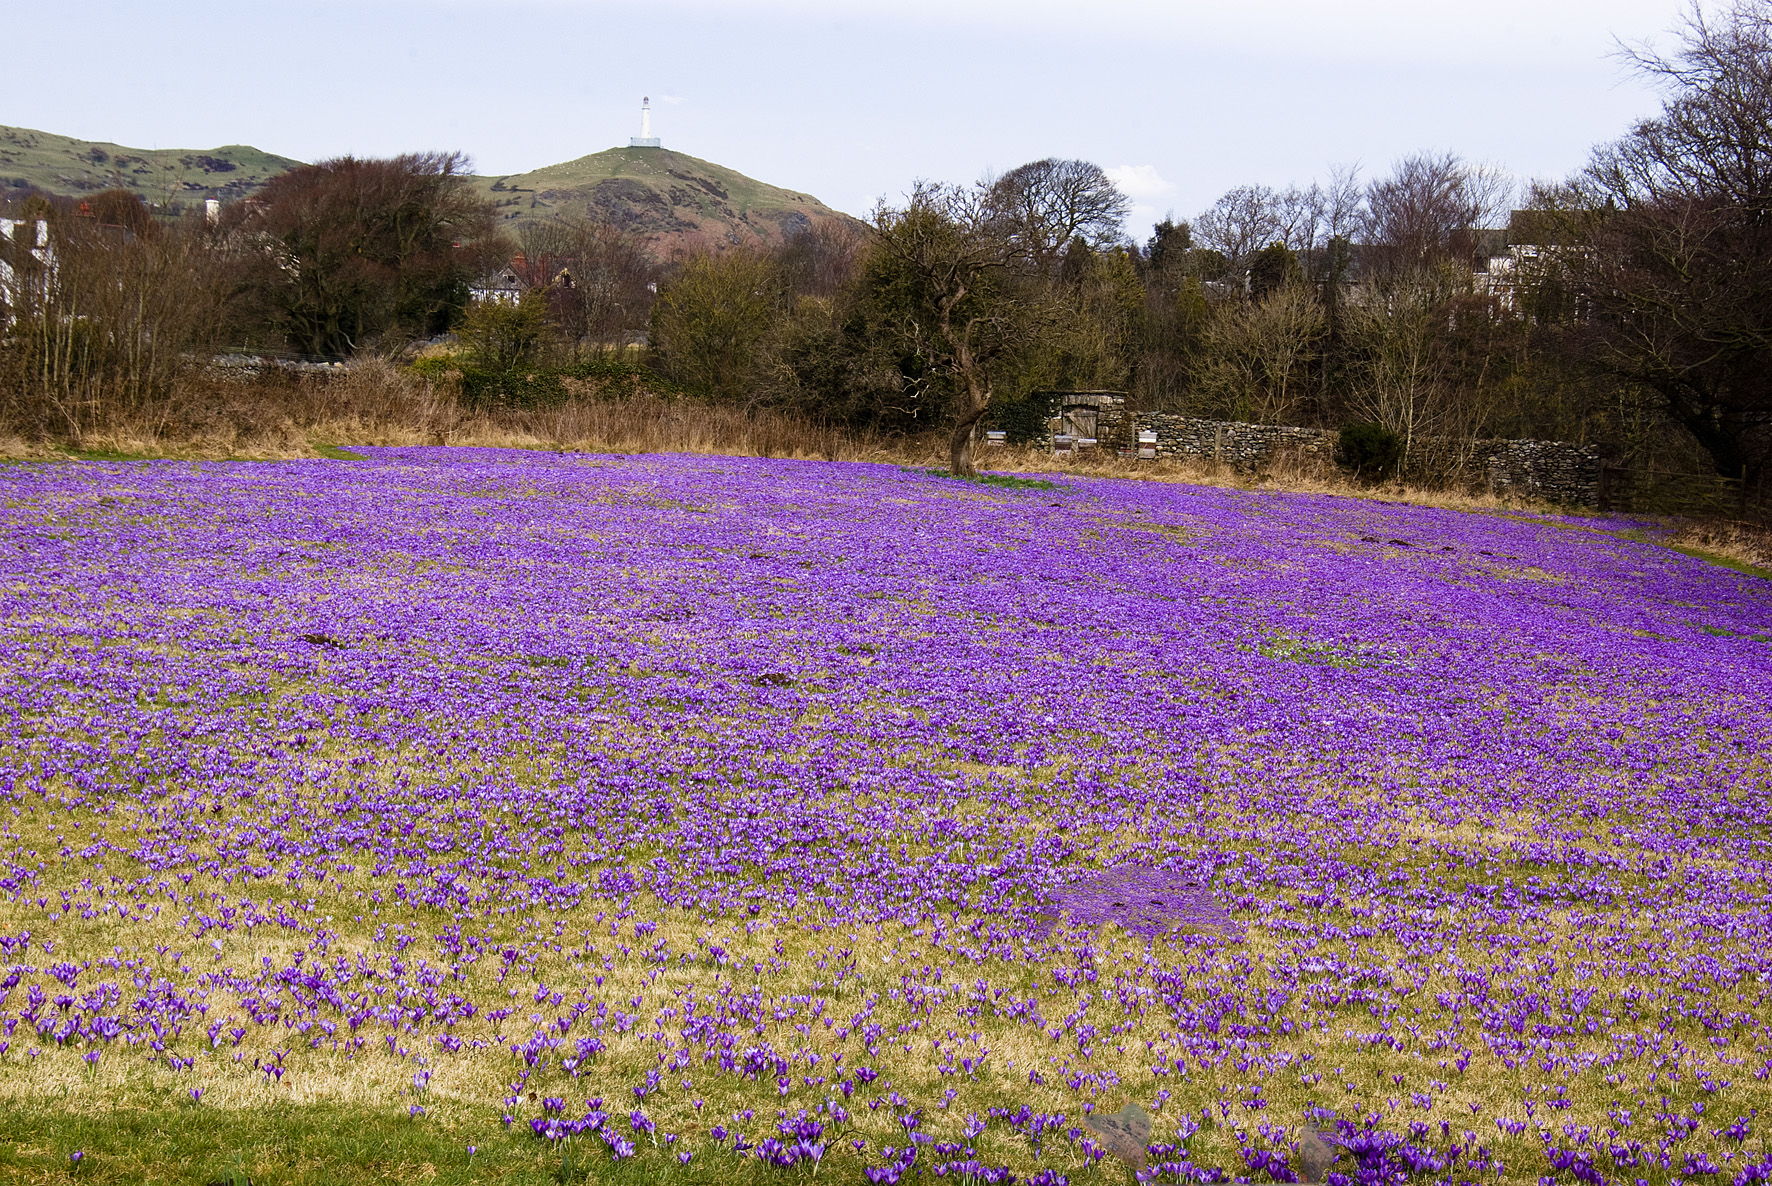 picture shows a field of purple crocus